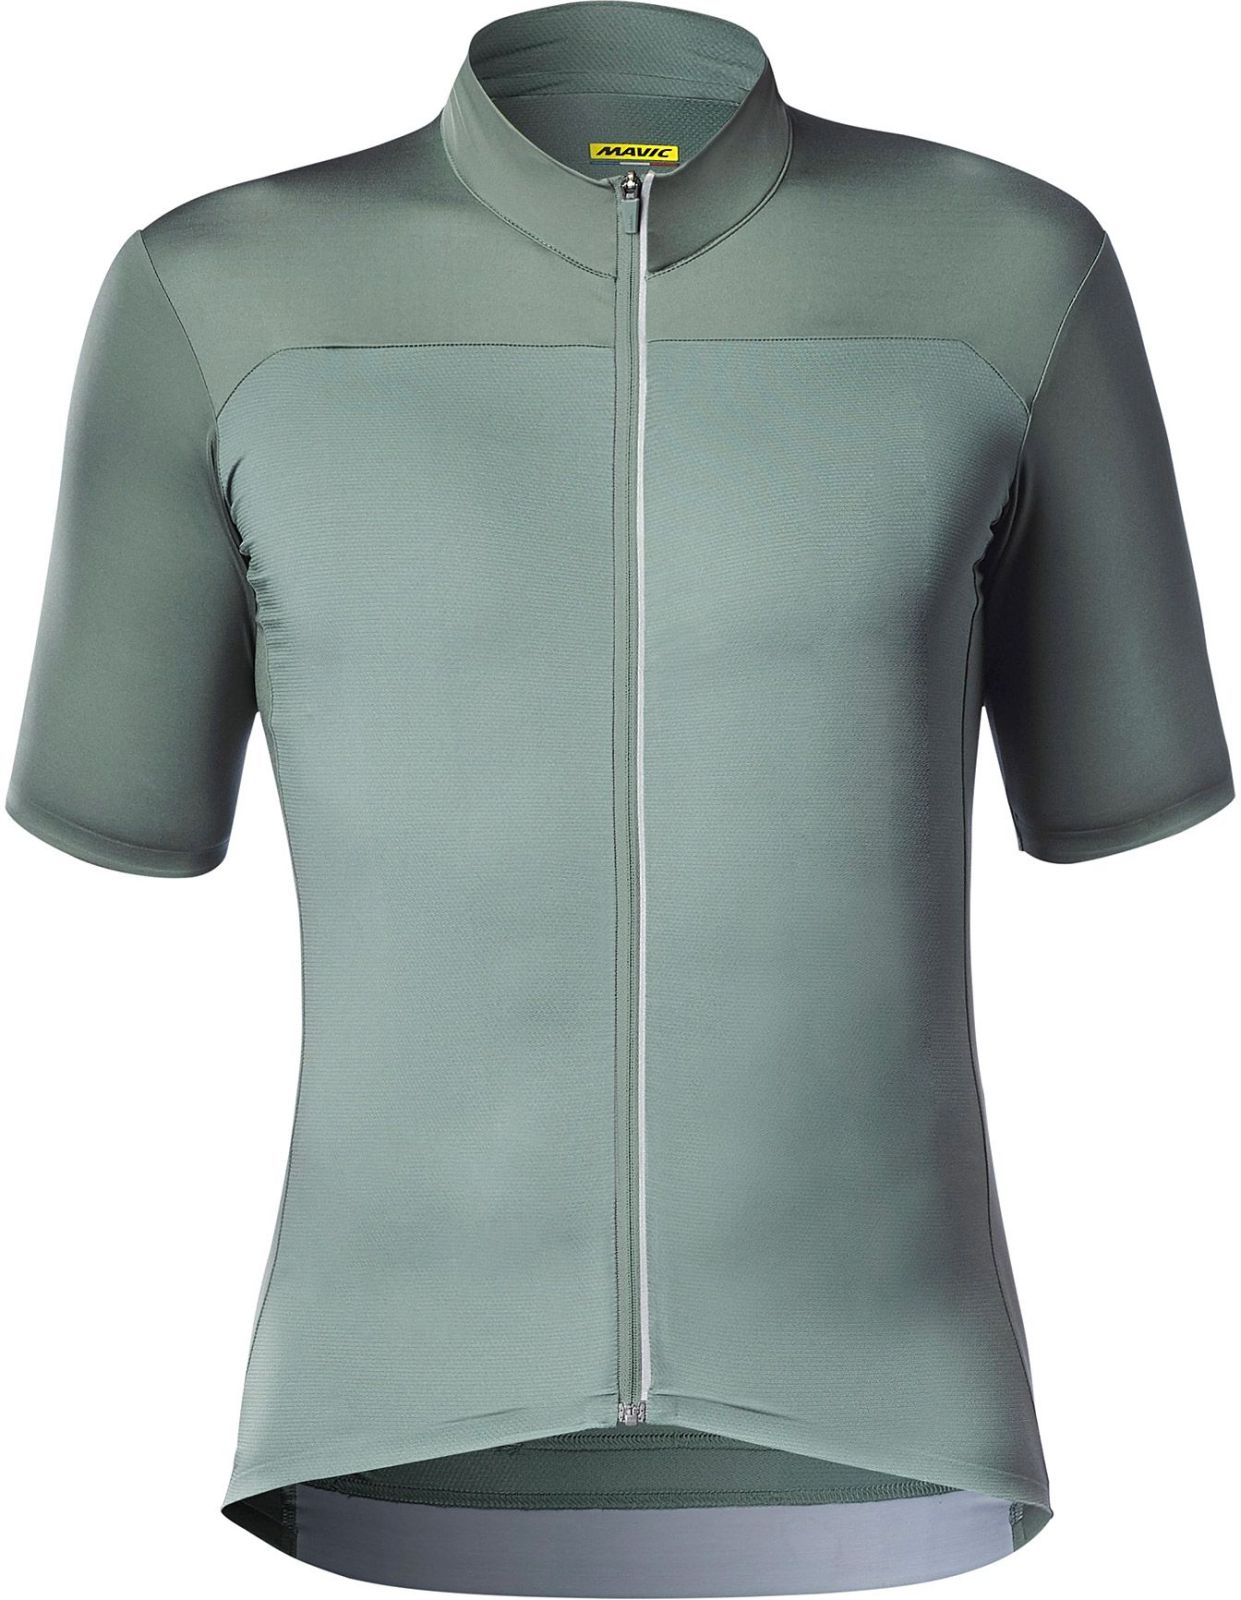 Mavic Essential Jersey - Laurel Wreath L